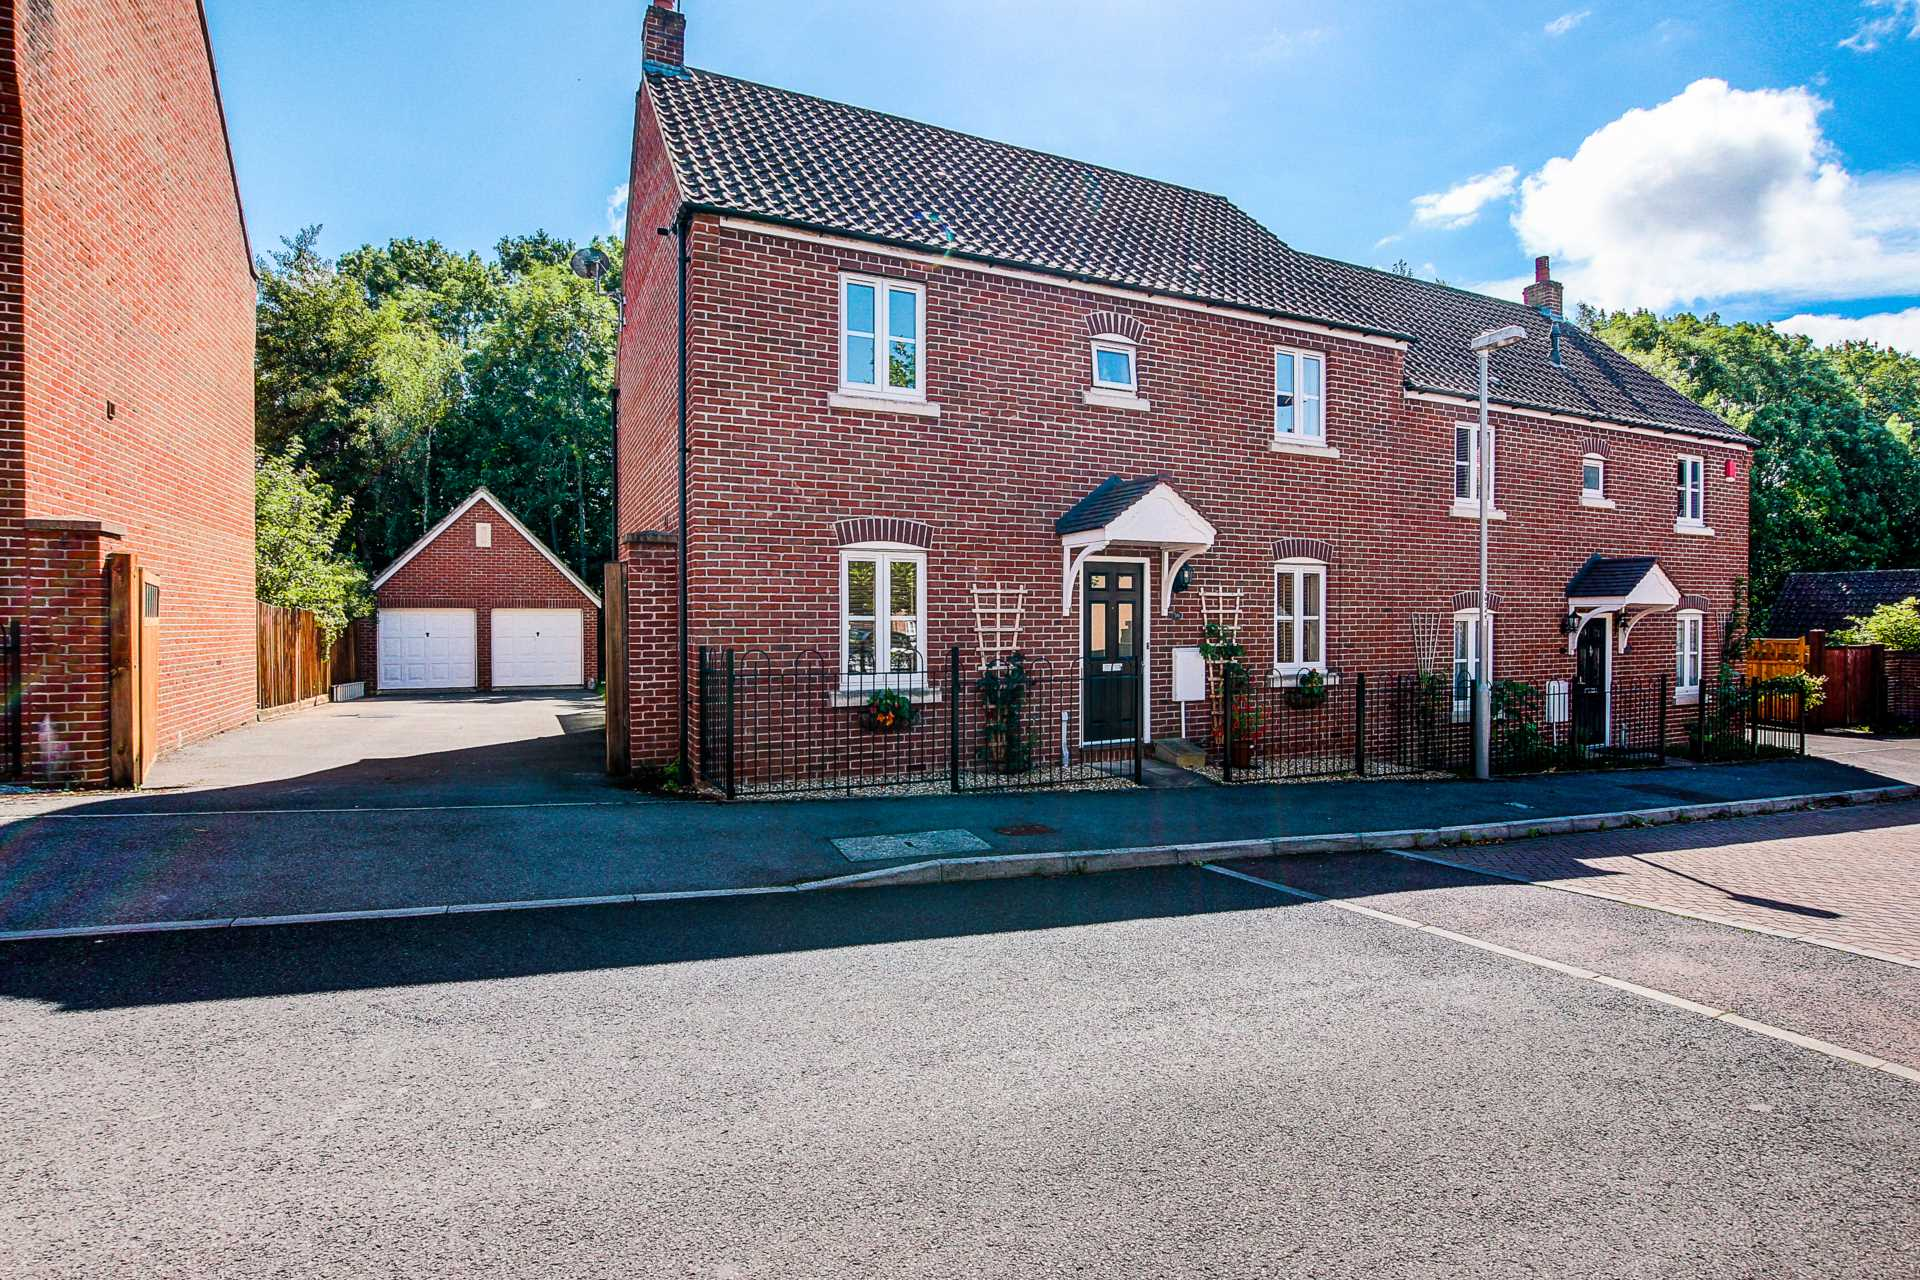 4 bed semi-detached house for sale in Westbury Way, Blandford Forum 0